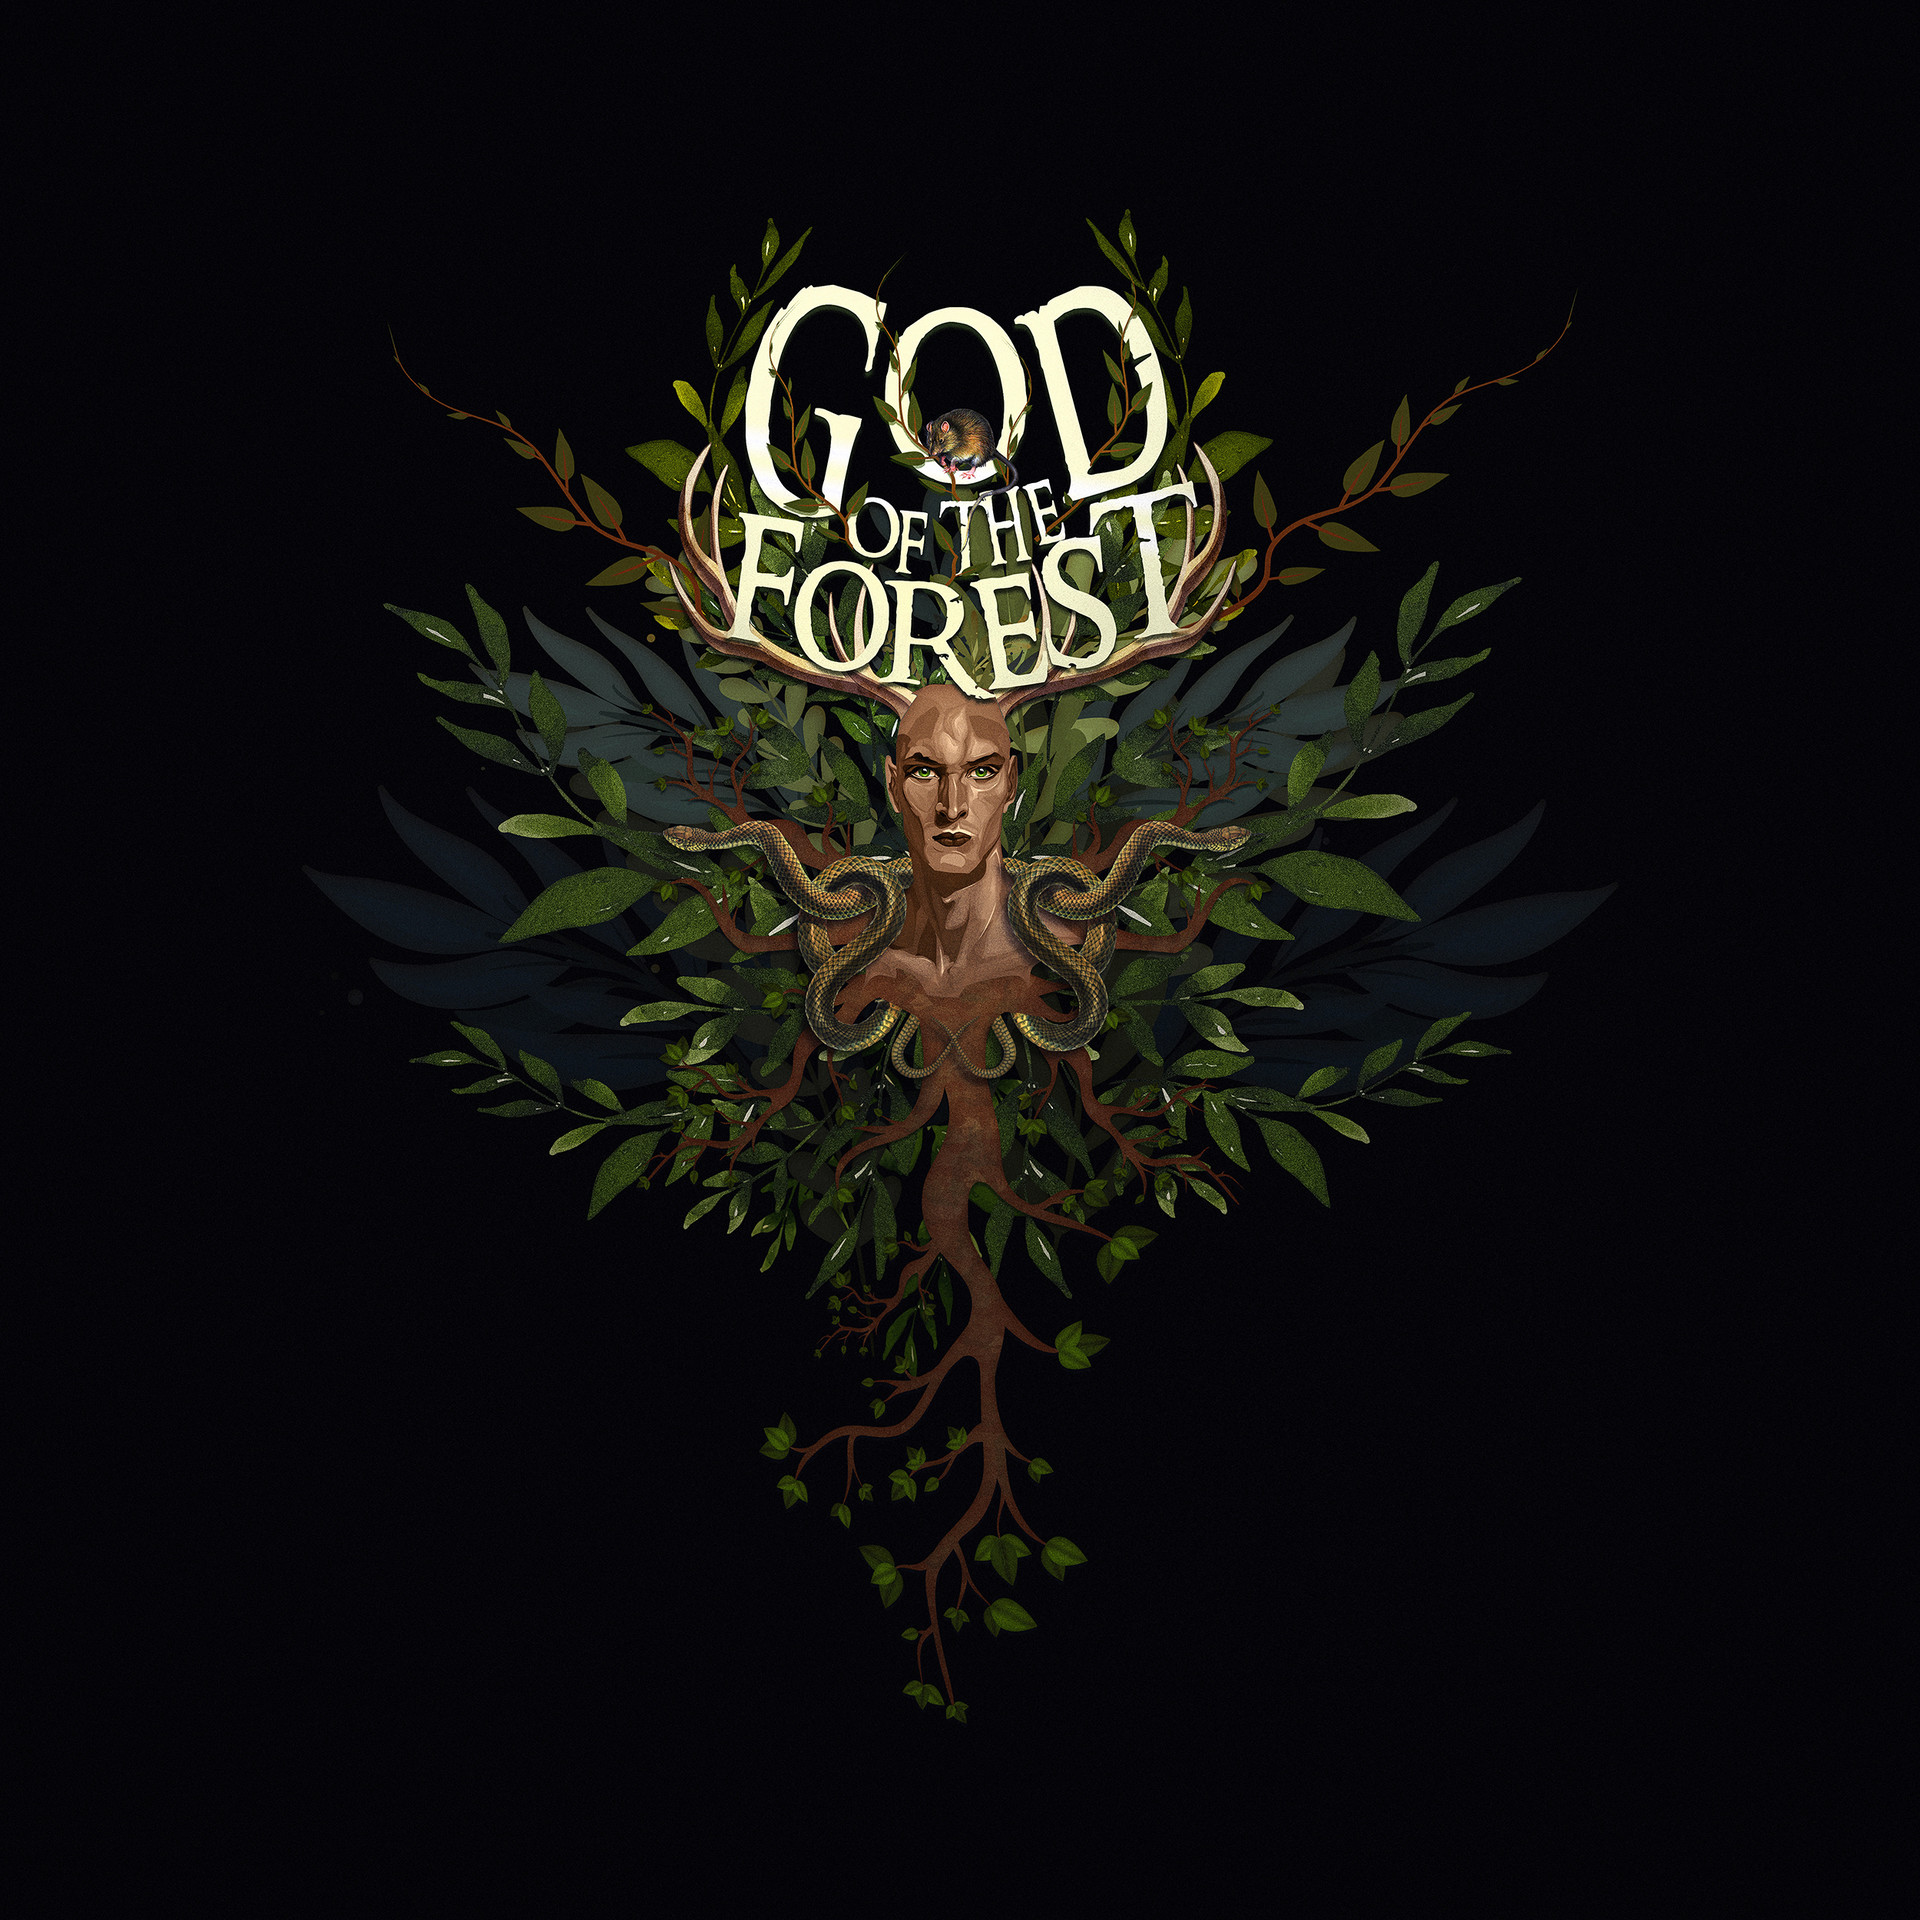 Raiyan momen new god of the forest art